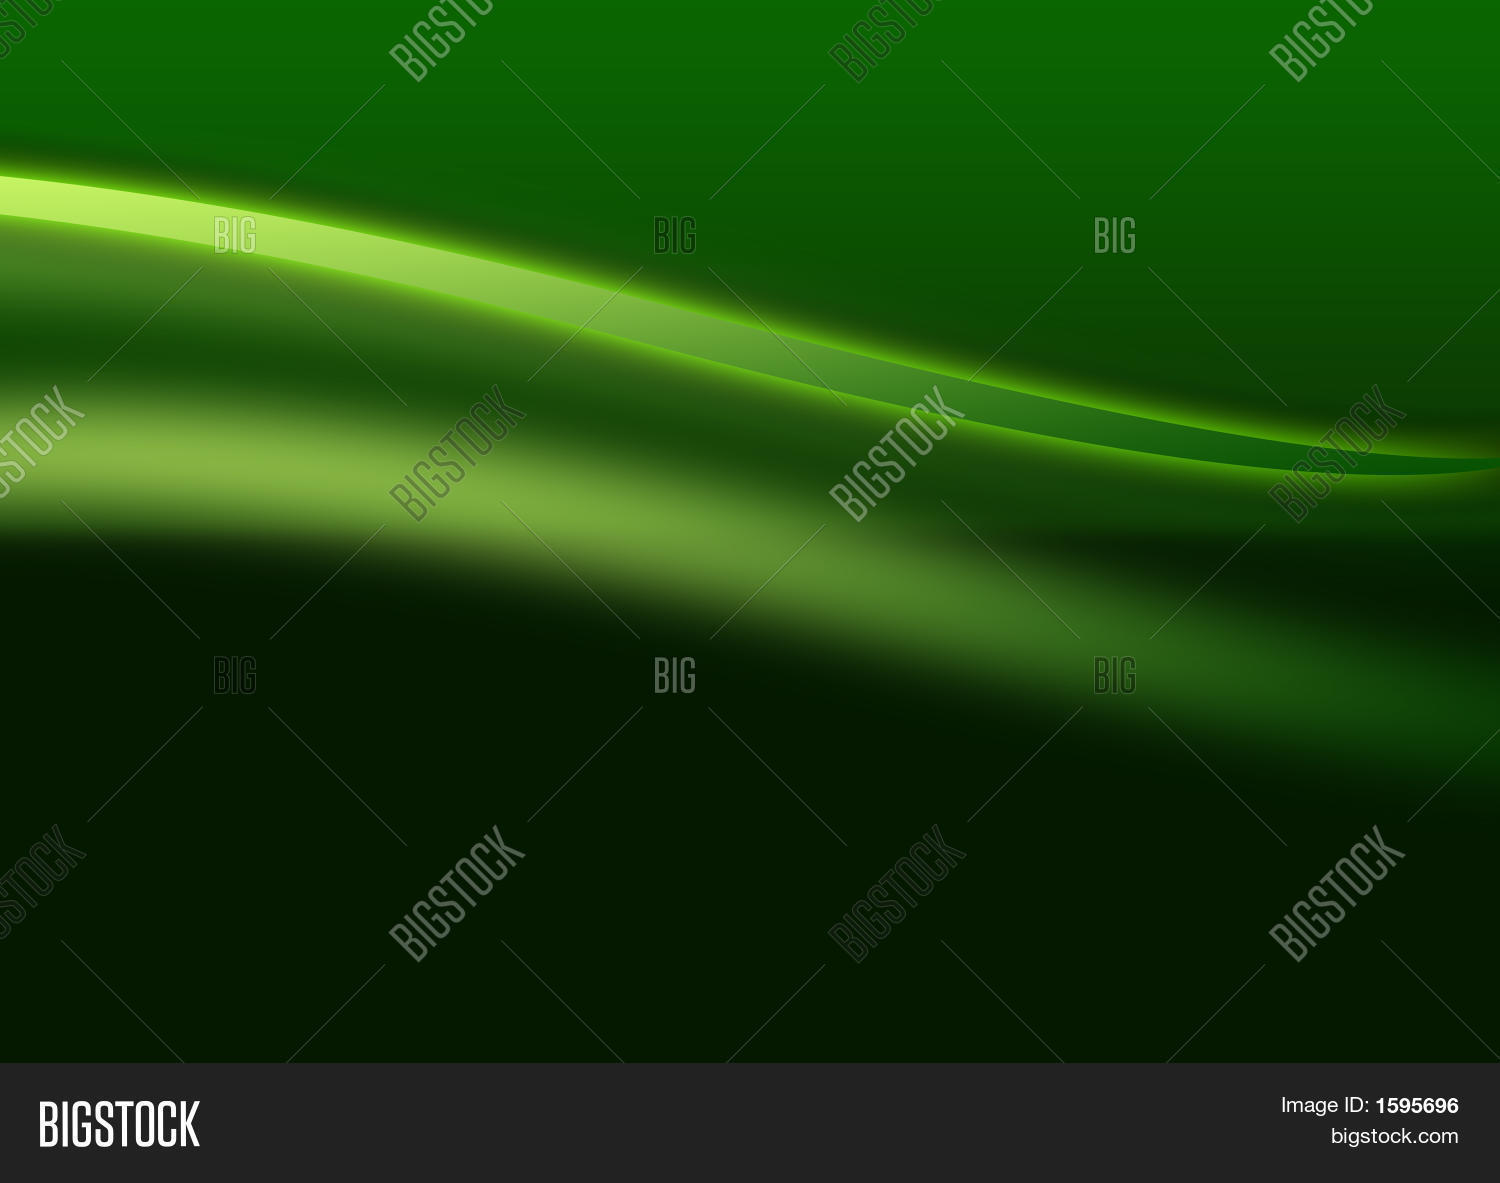 abstract,abstract background,abstract backgrounds,background,background abstract,background green,backgrounds abstract,black,black abstract background,color,colorful abstract background,composite,concept,conceptual,curves,cyber,dark,design,energy,fusion,futuristic,gradient,gradient background,graphic,green,green abstract background,green background,green backgrounds,greenish,illustration,layer,layout,light,modern,render,rendered,shape,shiny,style,symbolic,technology,theme,transparent,virtual,vision,wallpaper,wave,wavy